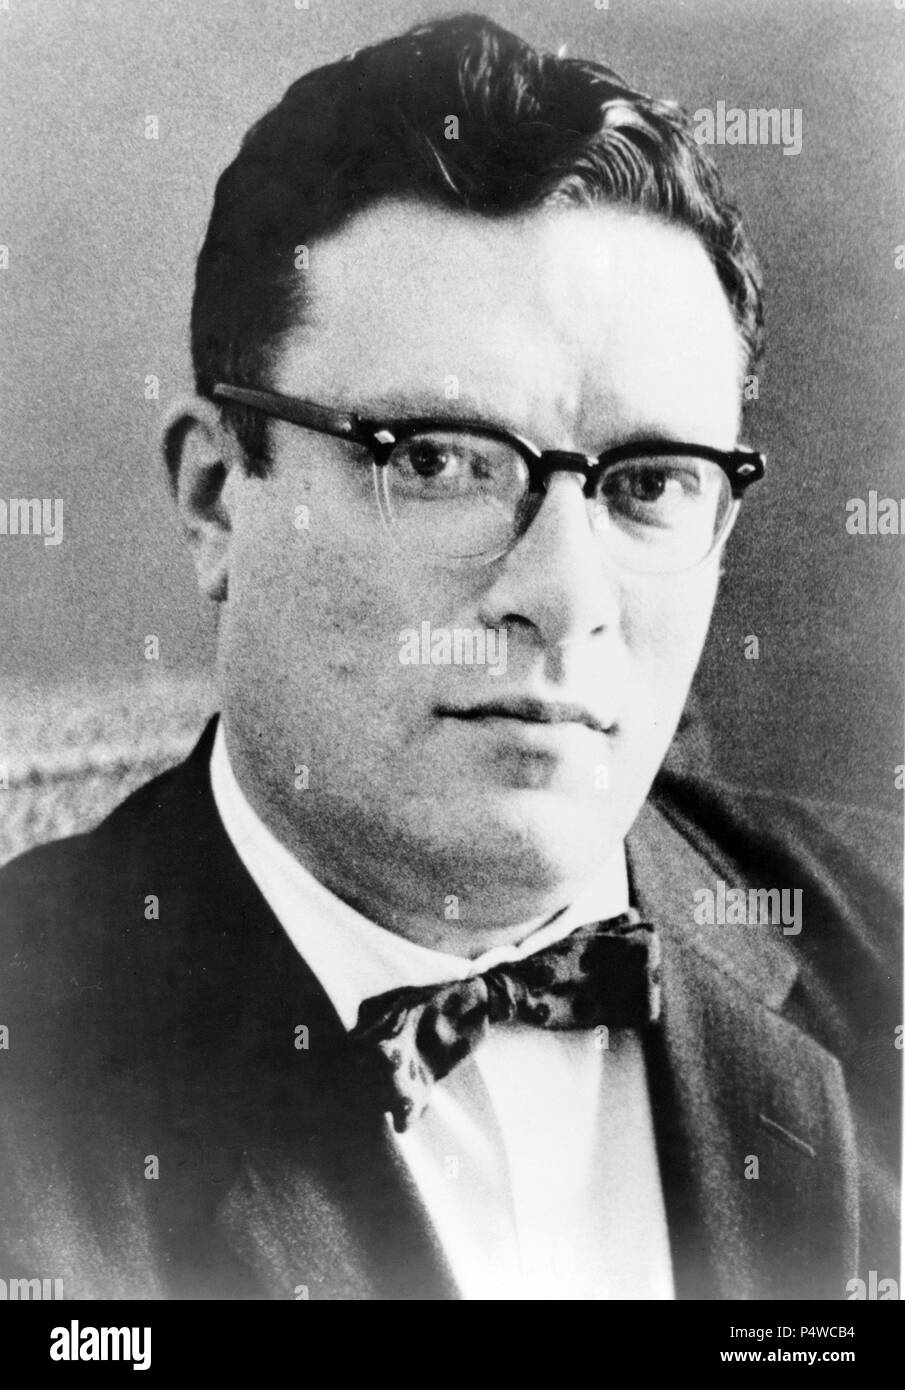 Isaac Asimov (1920-1992), American author known for his works of science fiction and for his popular science books. - Stock Image